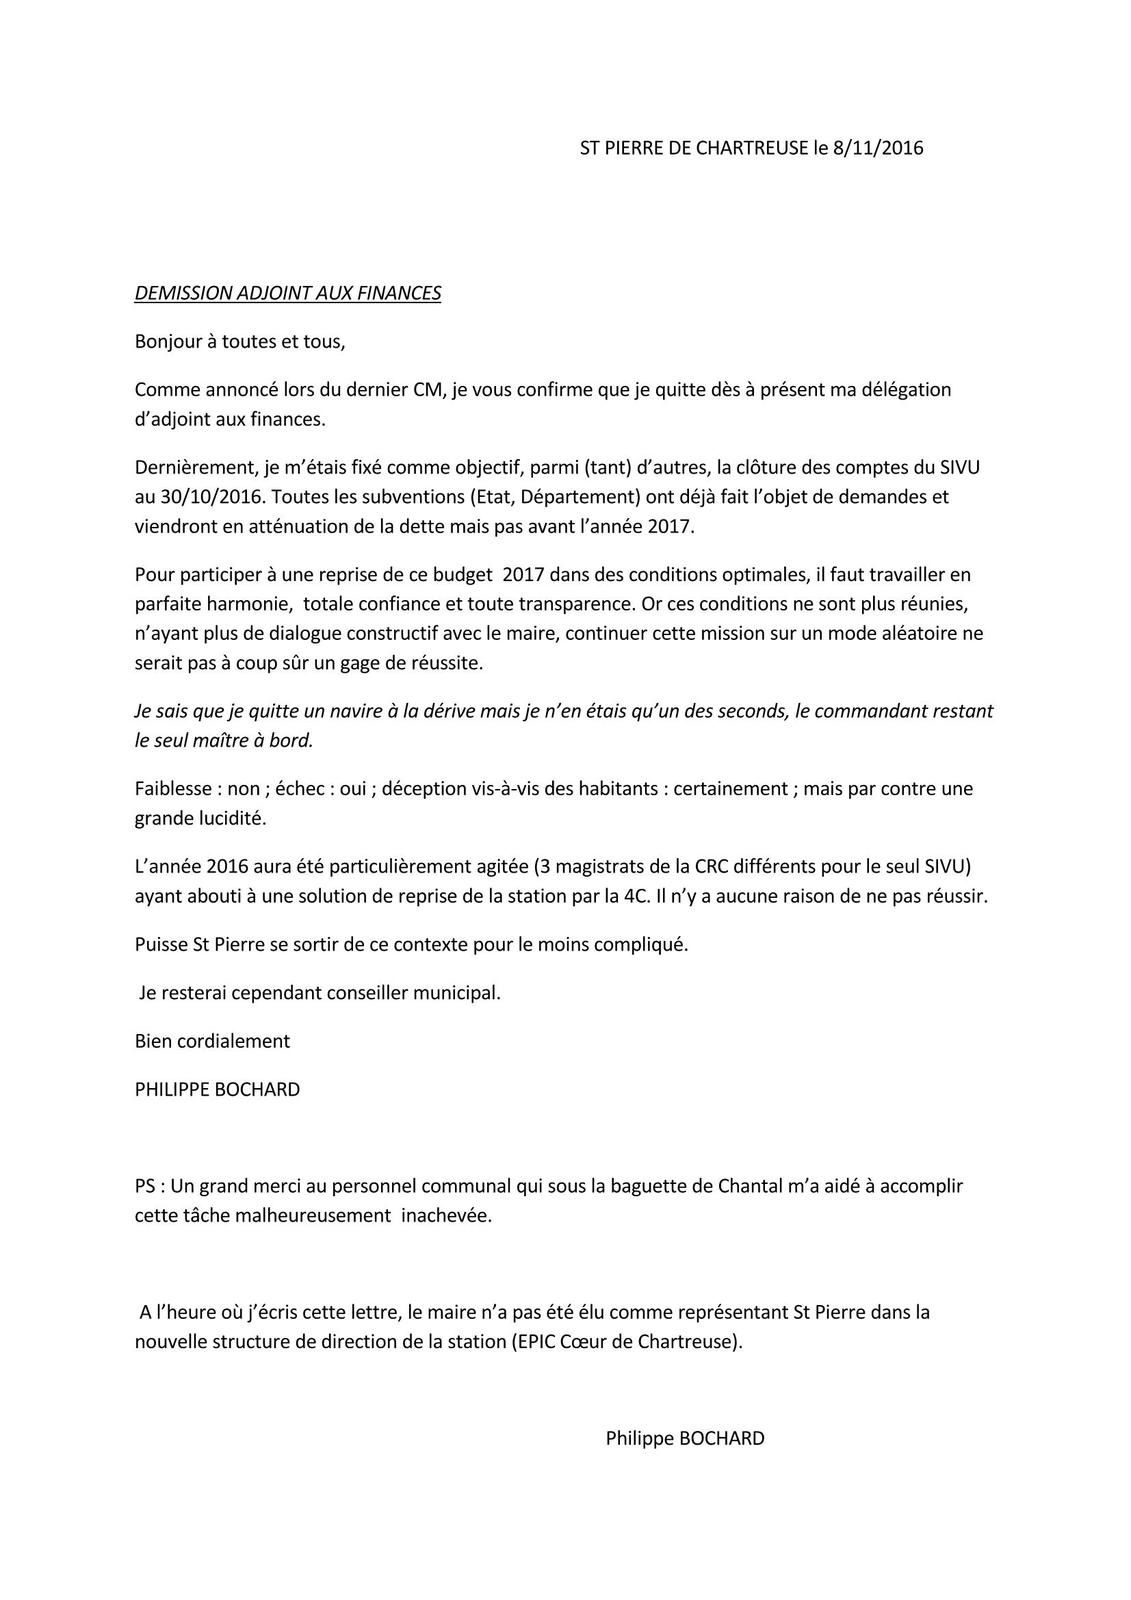 Démission de son poste d'adjoint aux finances de Philippe BOCHARD !